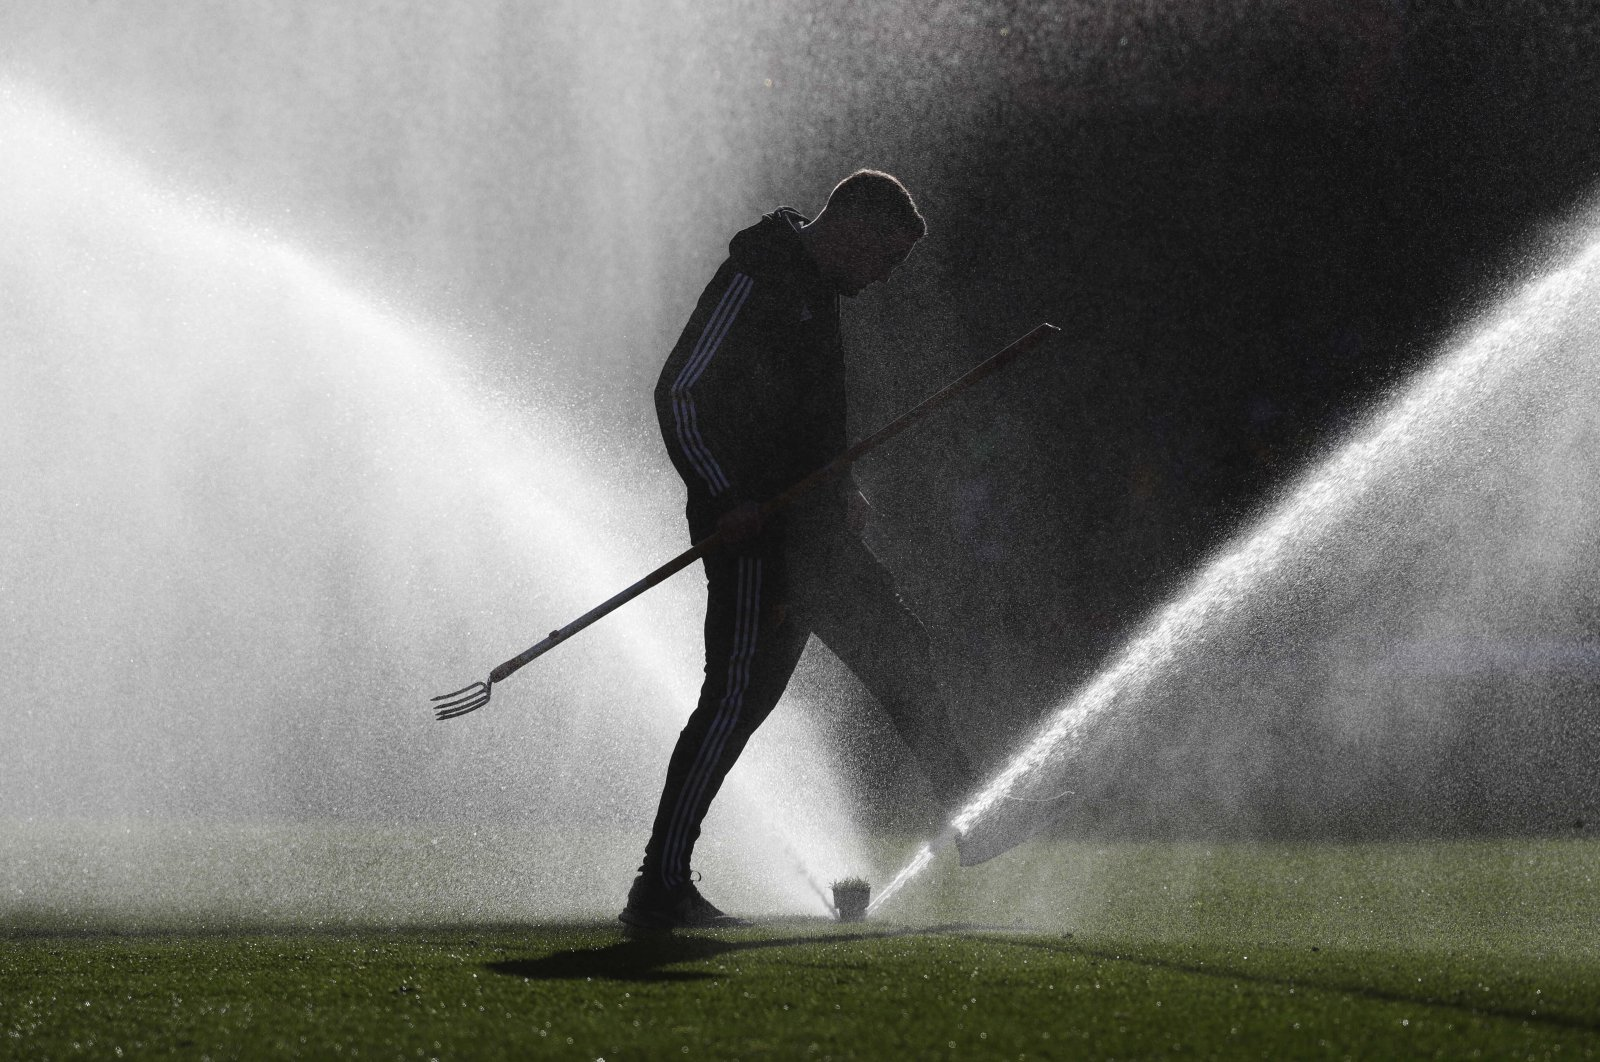 A field worker walks through a spray of water on the pitch prior to the start of the Premier League football match between Watford and Tottenham Hotspur at Vicarage Road, Watford, England, Jan. 18, 2020. (AP Photo)